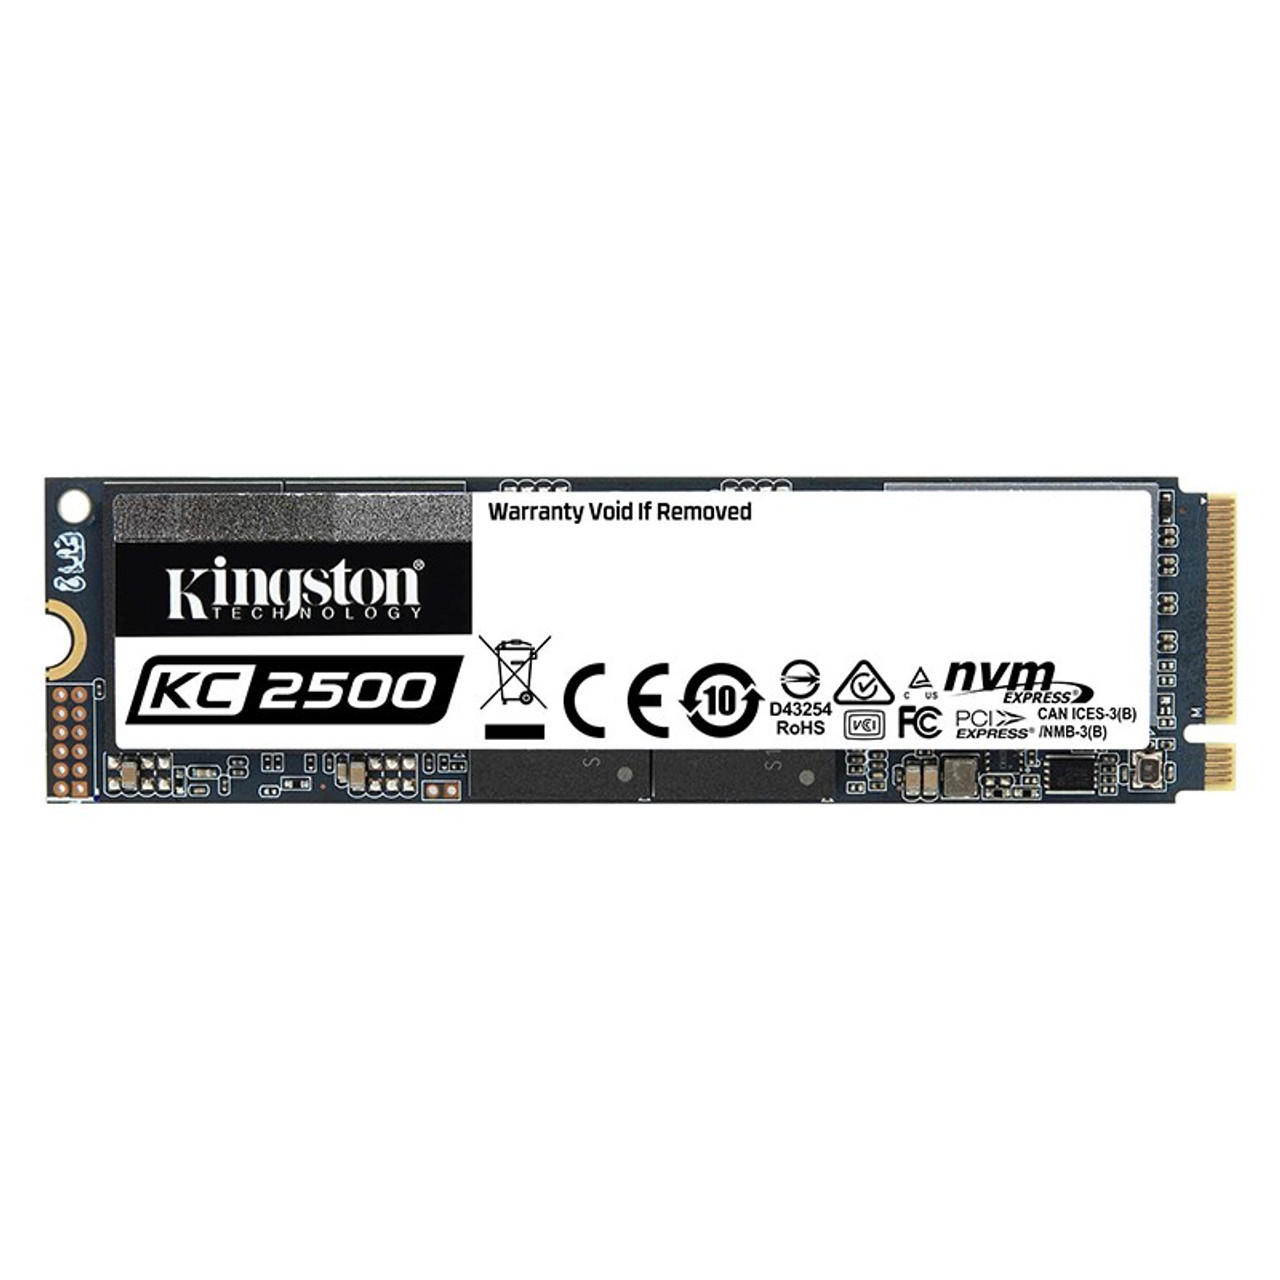 Image for Kingston KC2500 2TB M.2 (2280) PCIe NVMe SSD CX Computer Superstore